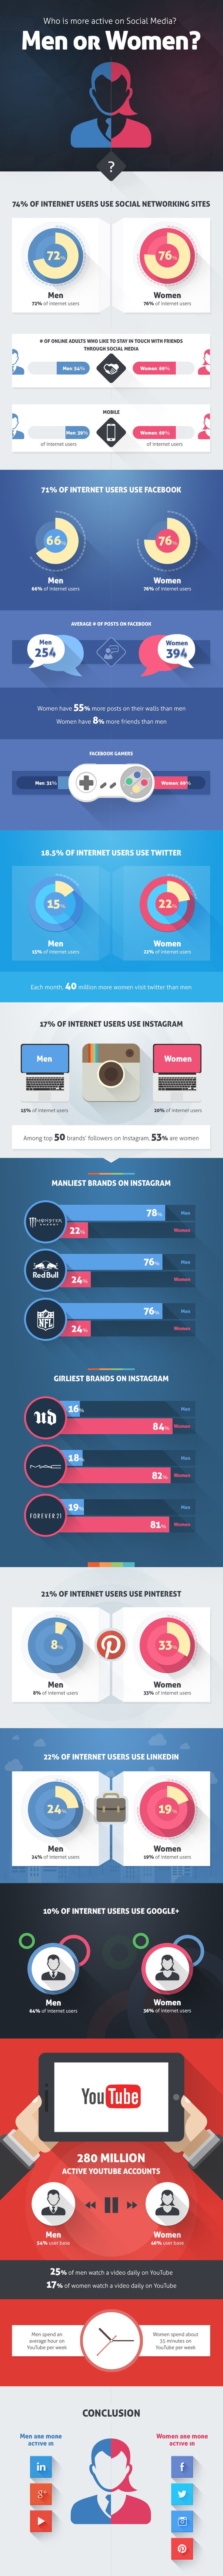 #SocialMedia #infographic - Men vs. Women - Who Is More Active On #Facebook, #Twitter, #Instagram & #Pinterest!!